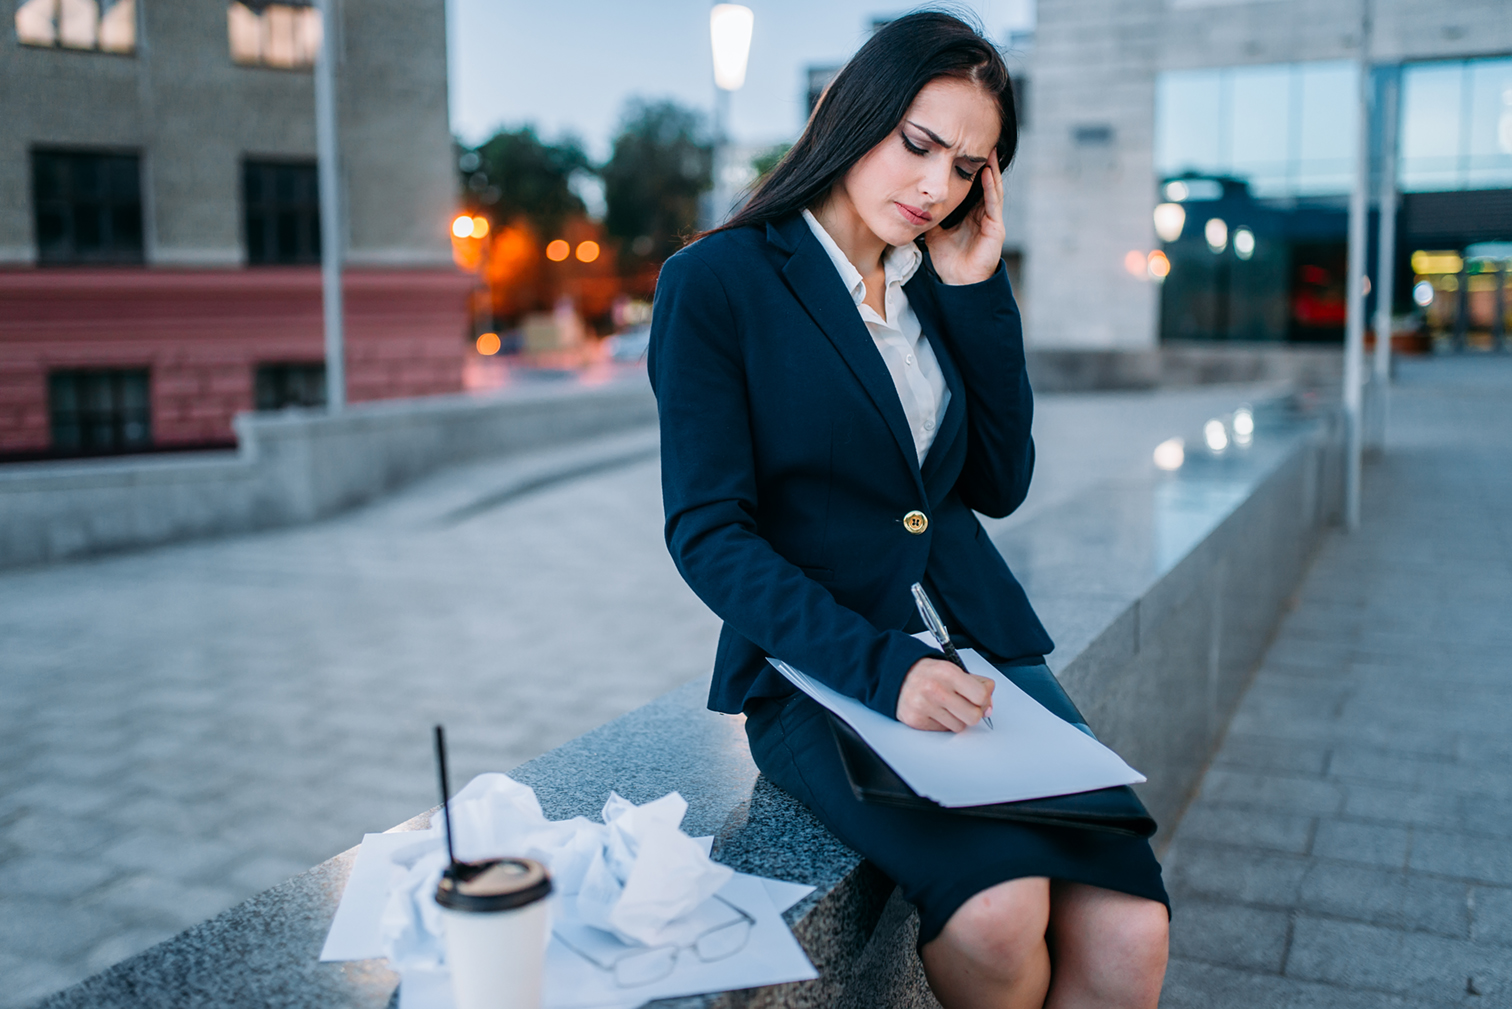 Tired businesswoman works outdoor, financial statements, business center on background. Modern building, cityscape. Female businessperson